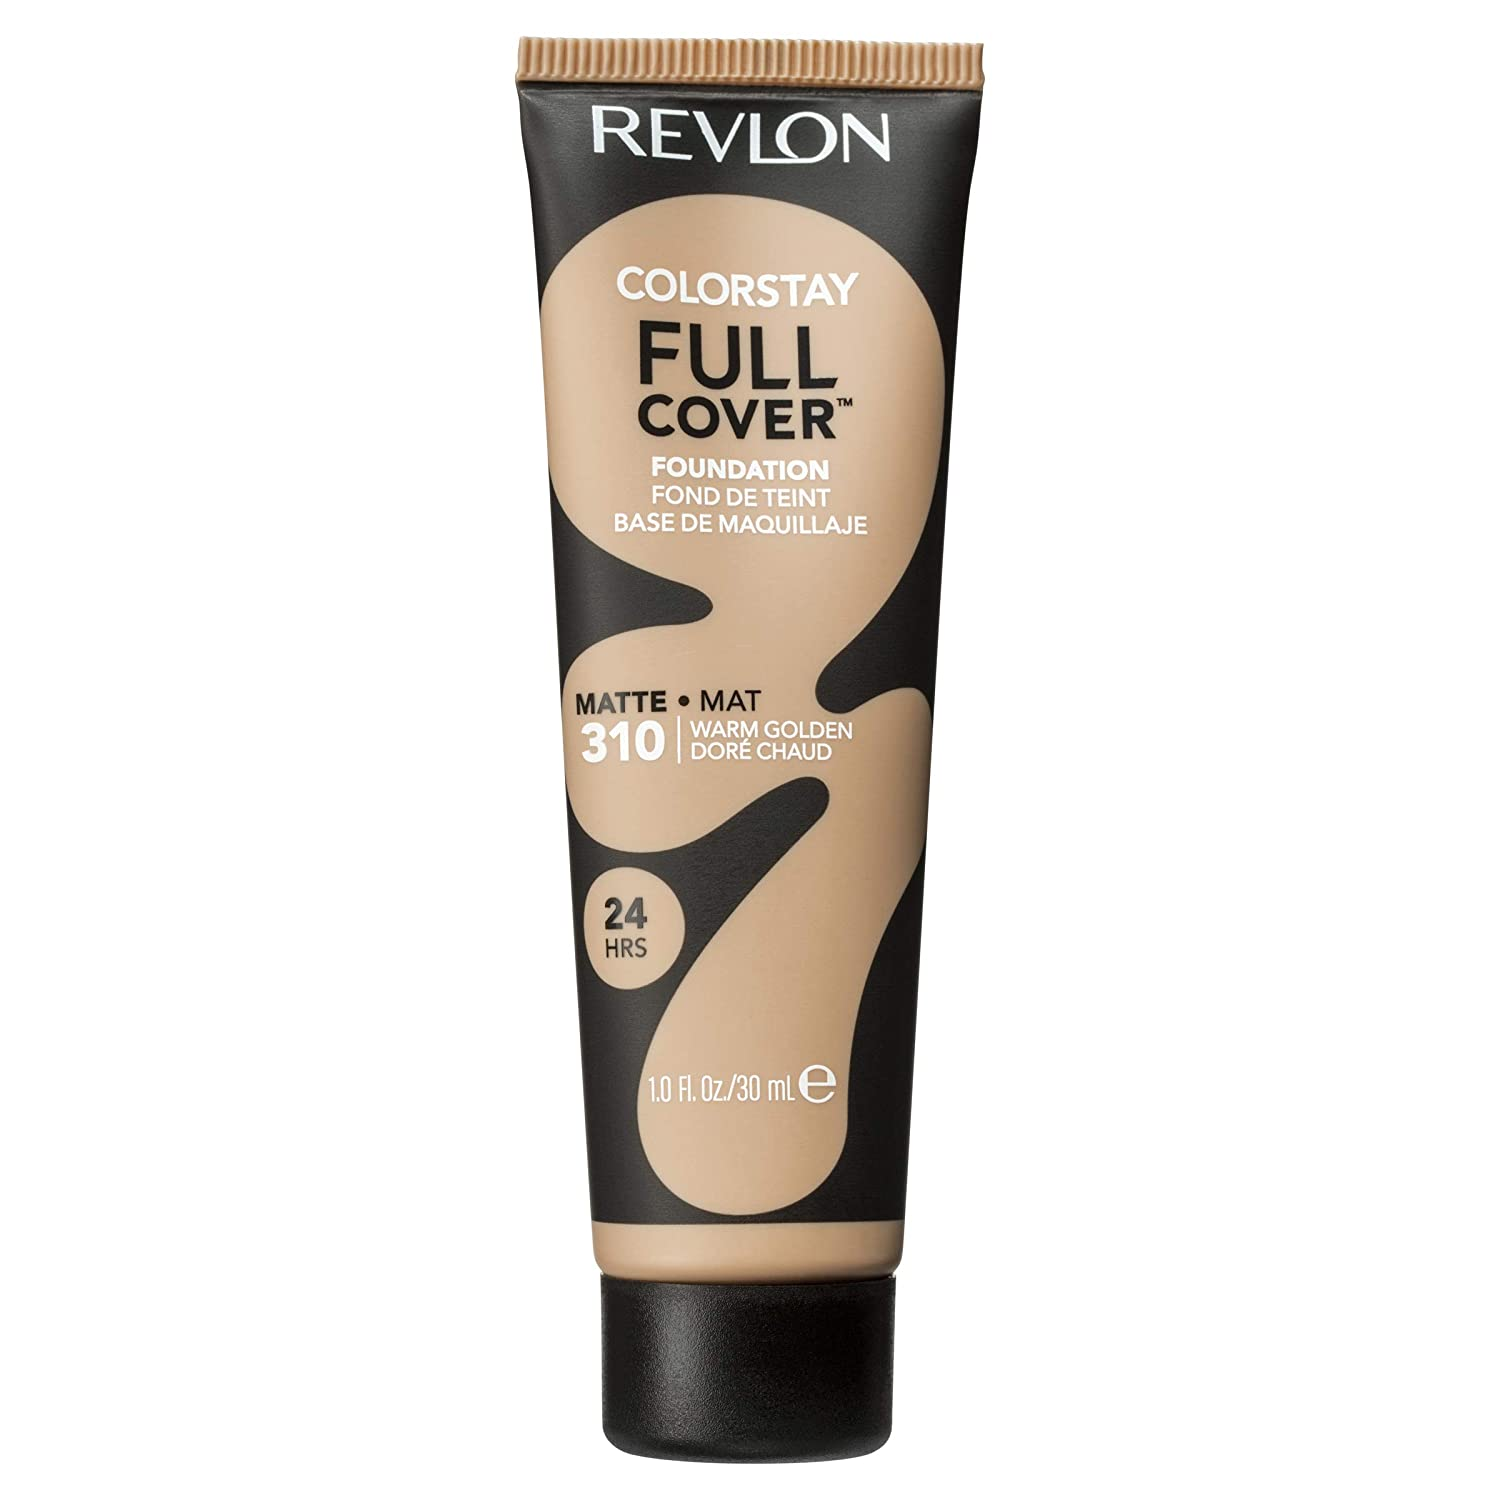 Revlon Color stay full cover foundation, warm golden, full coverage, matte finish, 30ml 1335-08